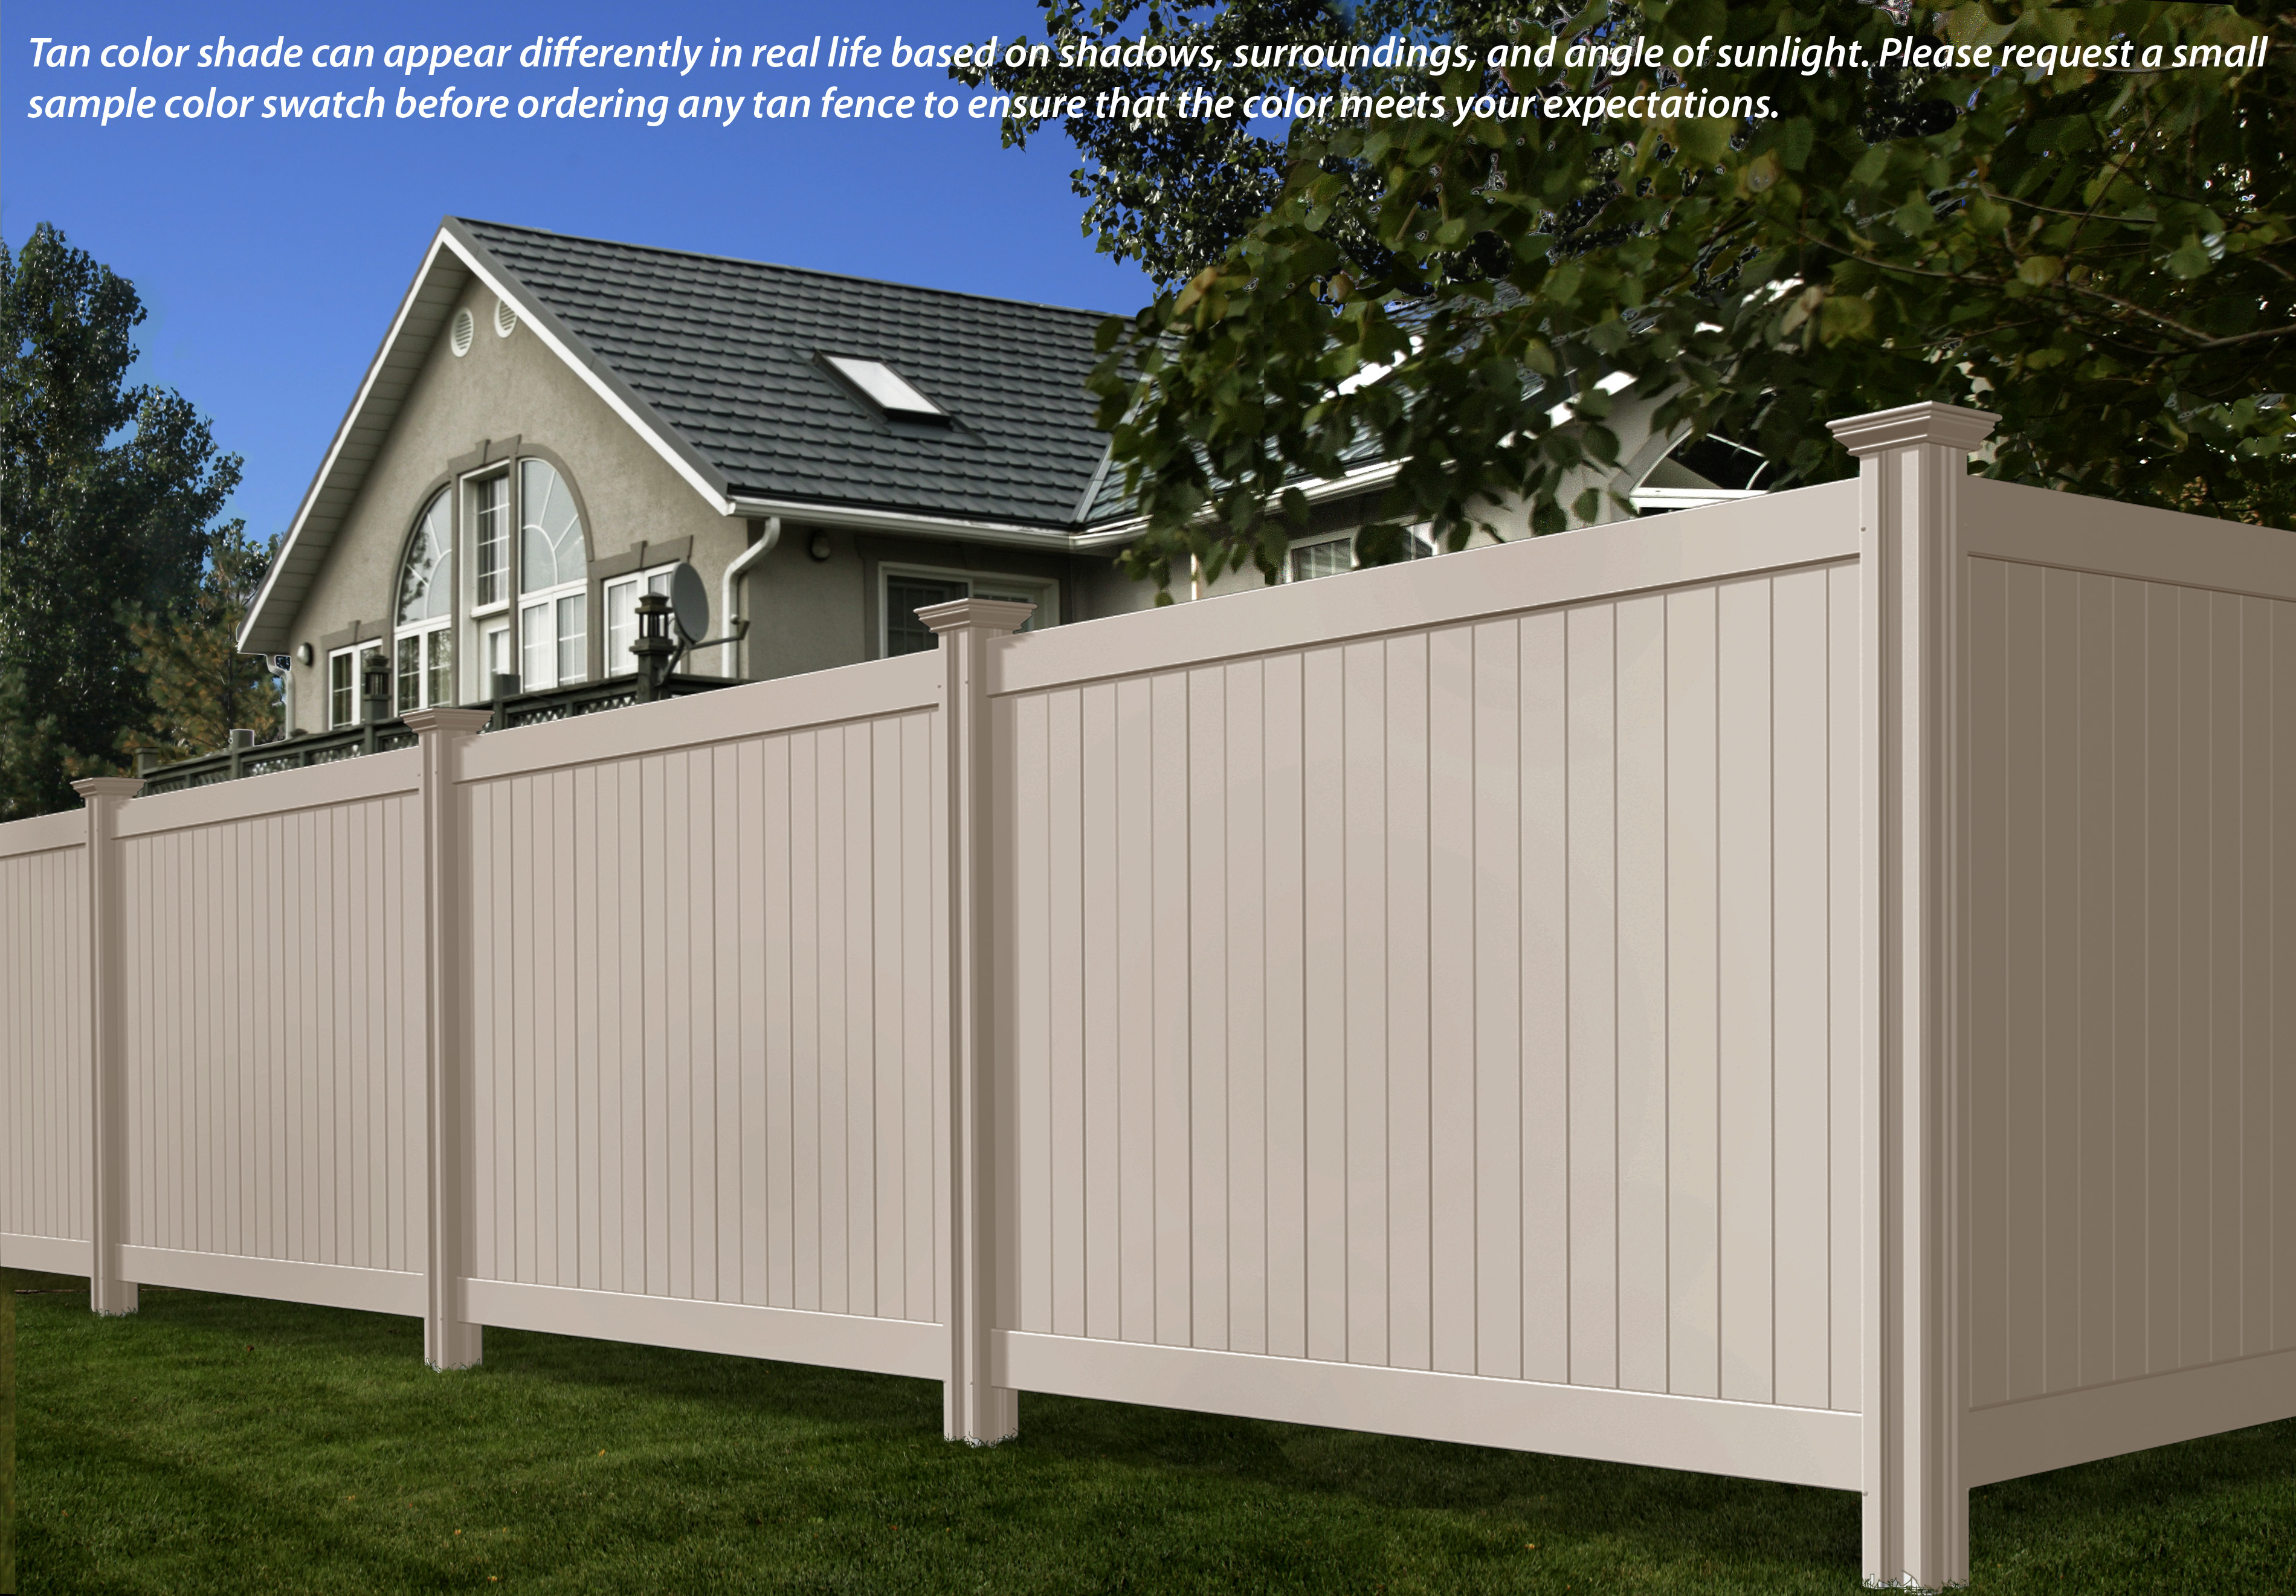 Steady freddy vinyl fence tan or almond color wambam